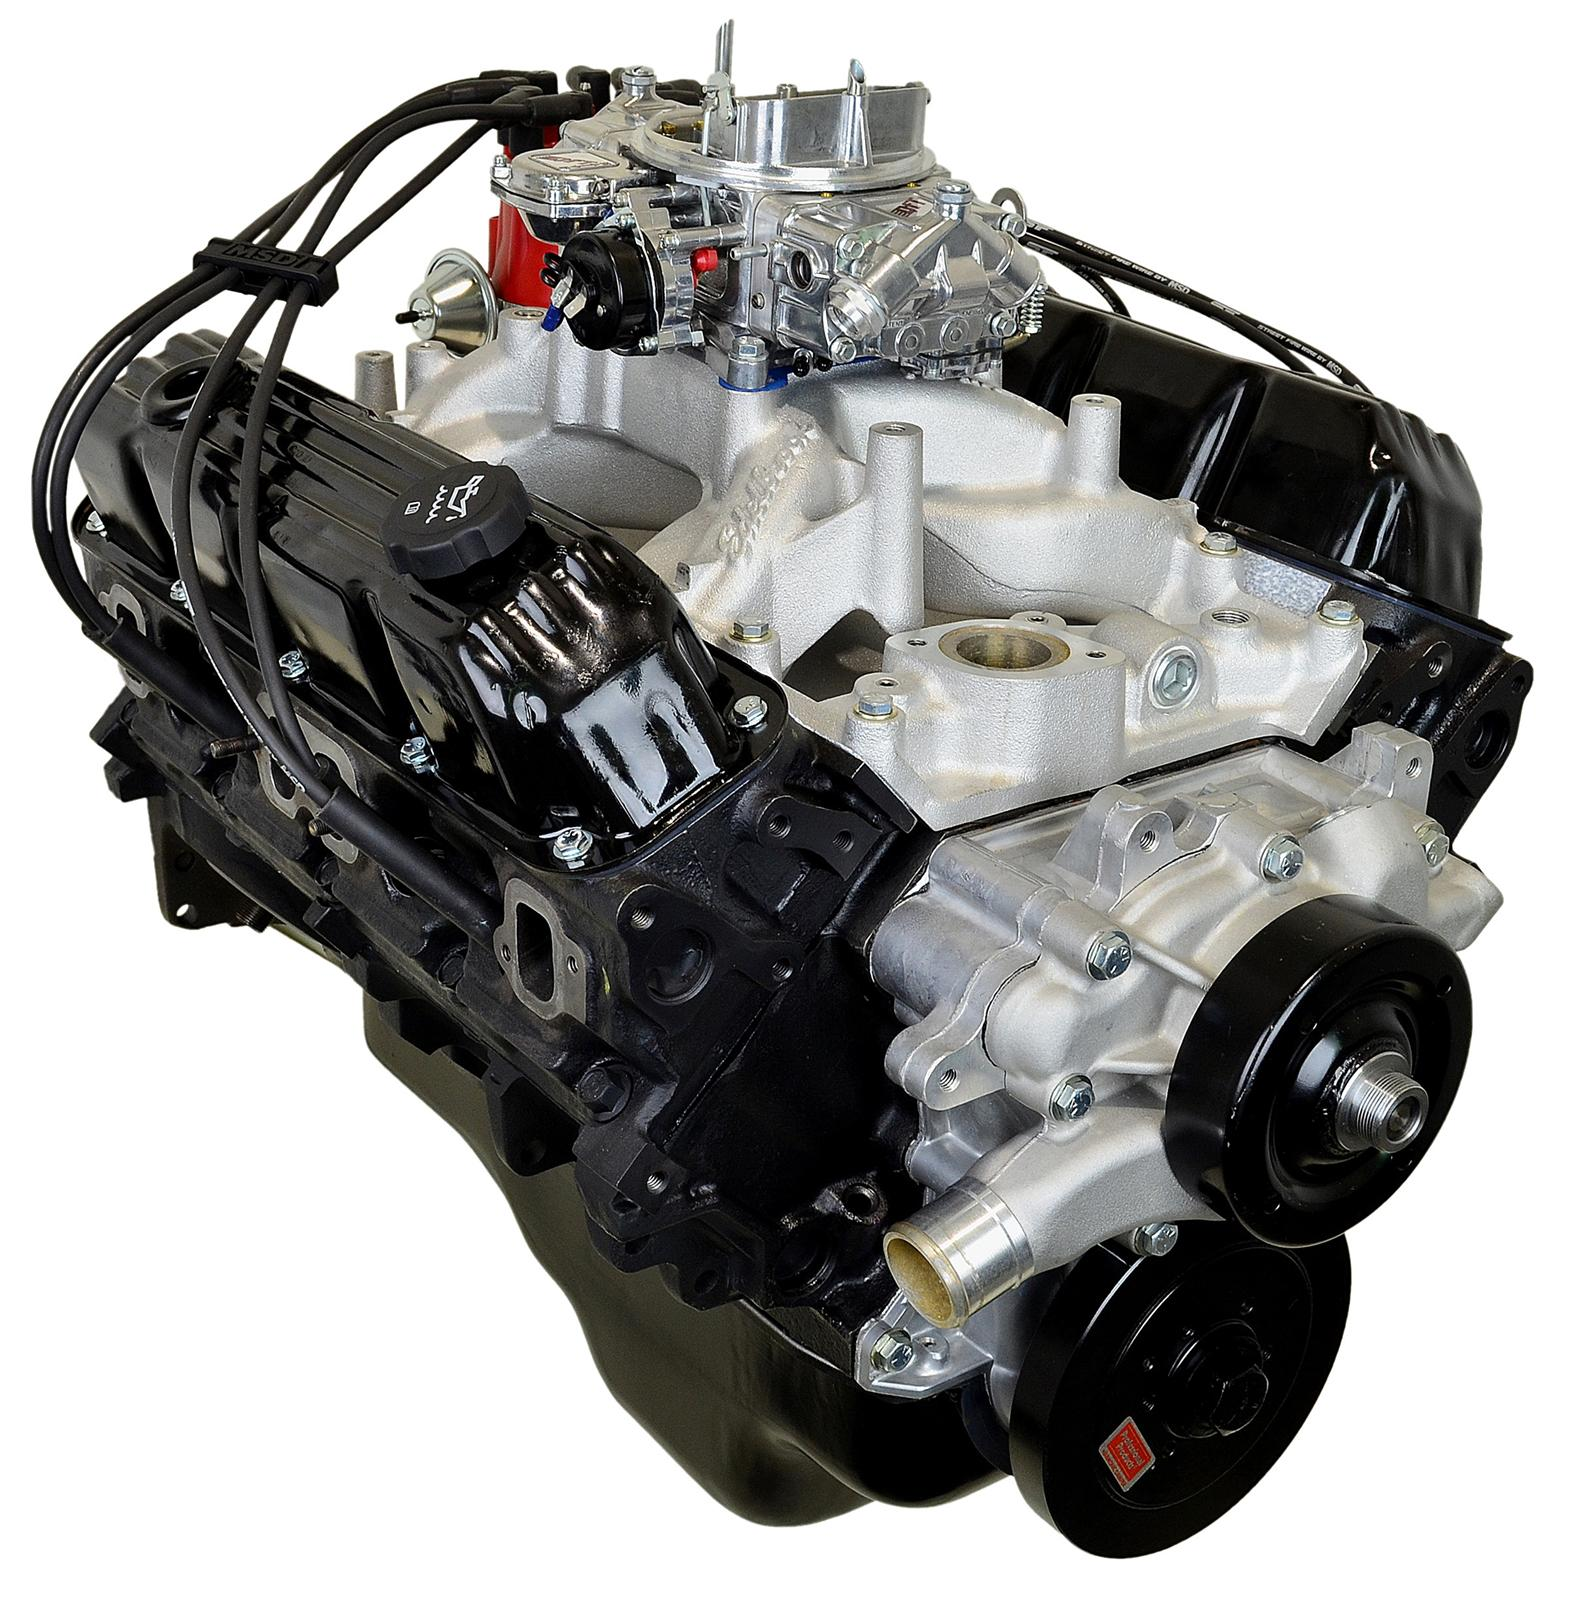 Mighty mopars examining 8 great crate engines for vintage mopars atk high performance chrysler 360 290hp stage 3 crate engines malvernweather Choice Image